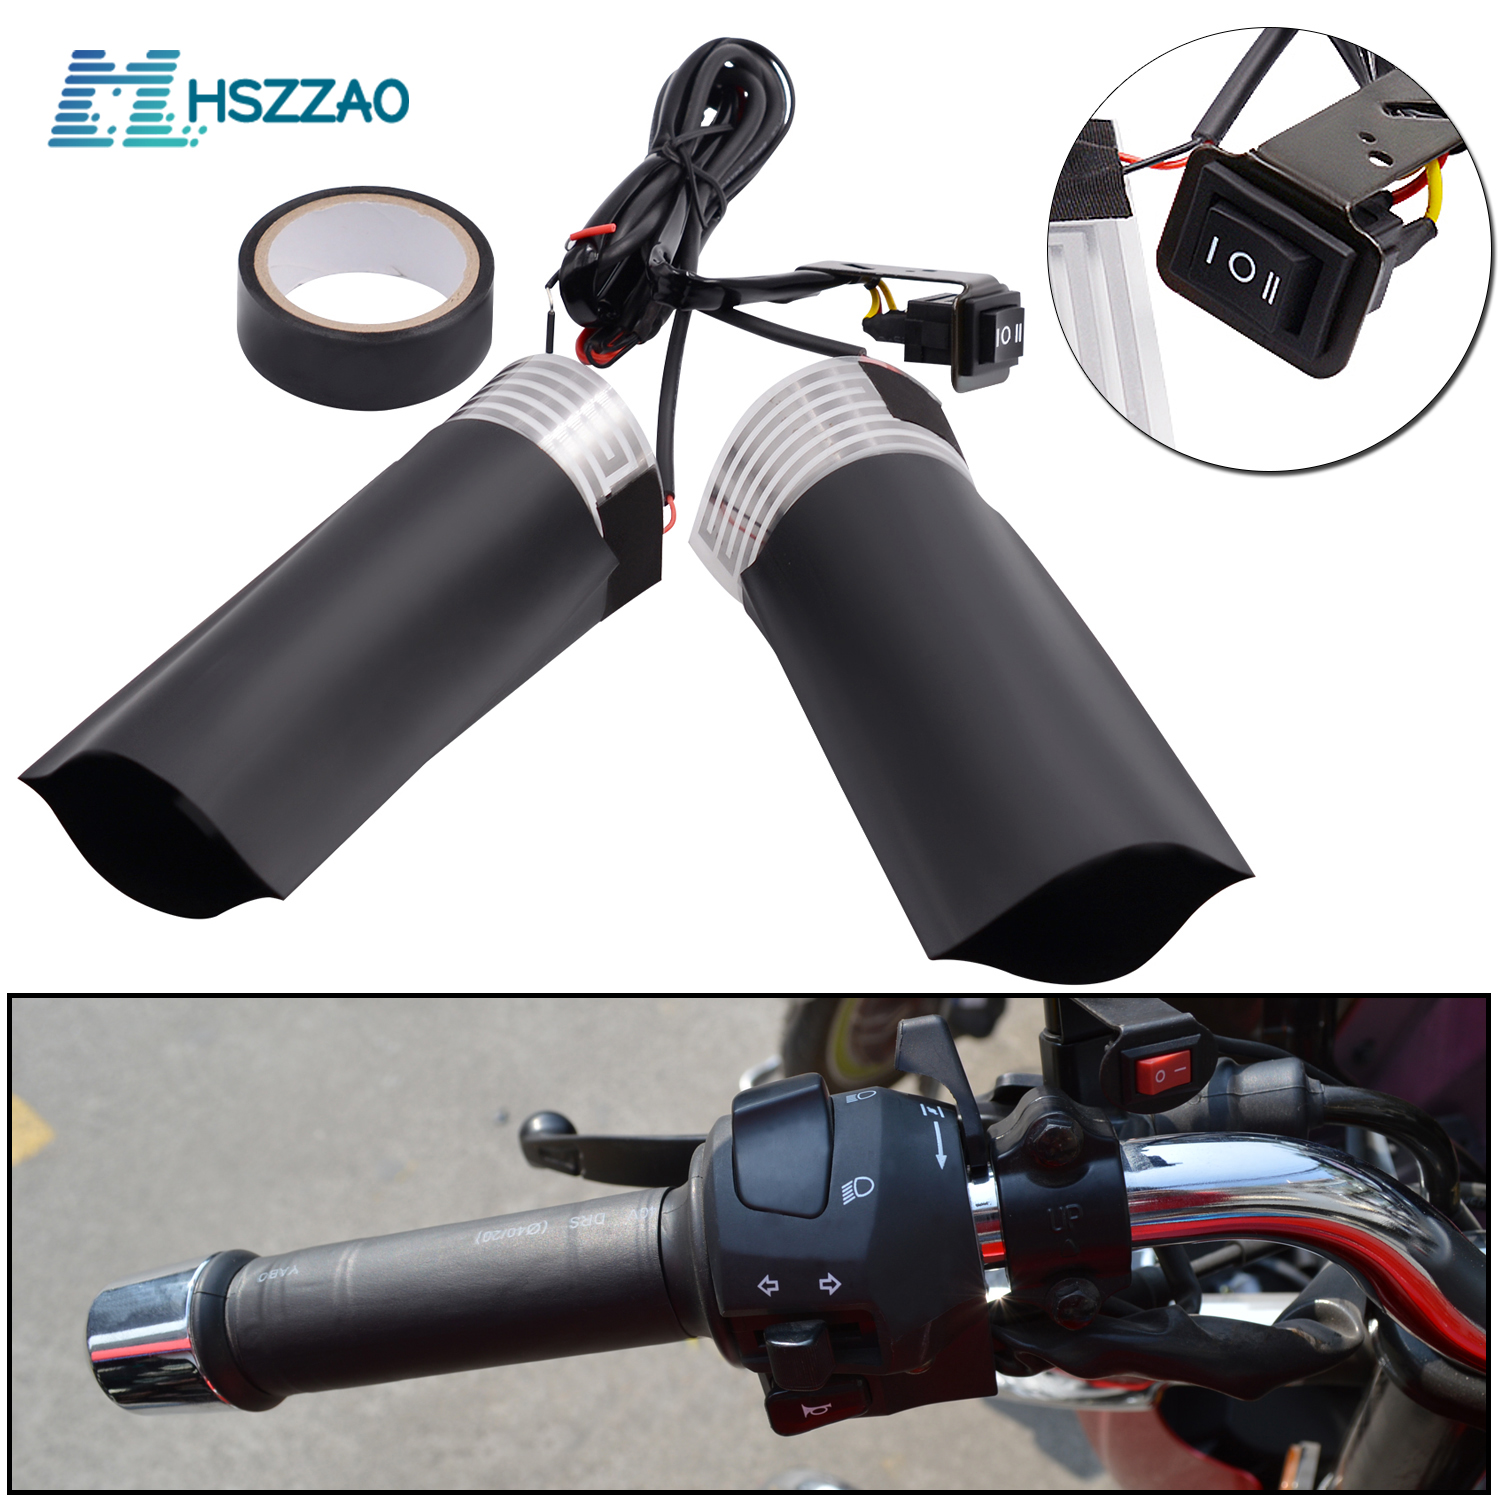 2 Pcs 12V PET Metal Heating Film Heated Grips Inserts Handlebar Hand Warmers For Universal Grip ATV Motorcycle